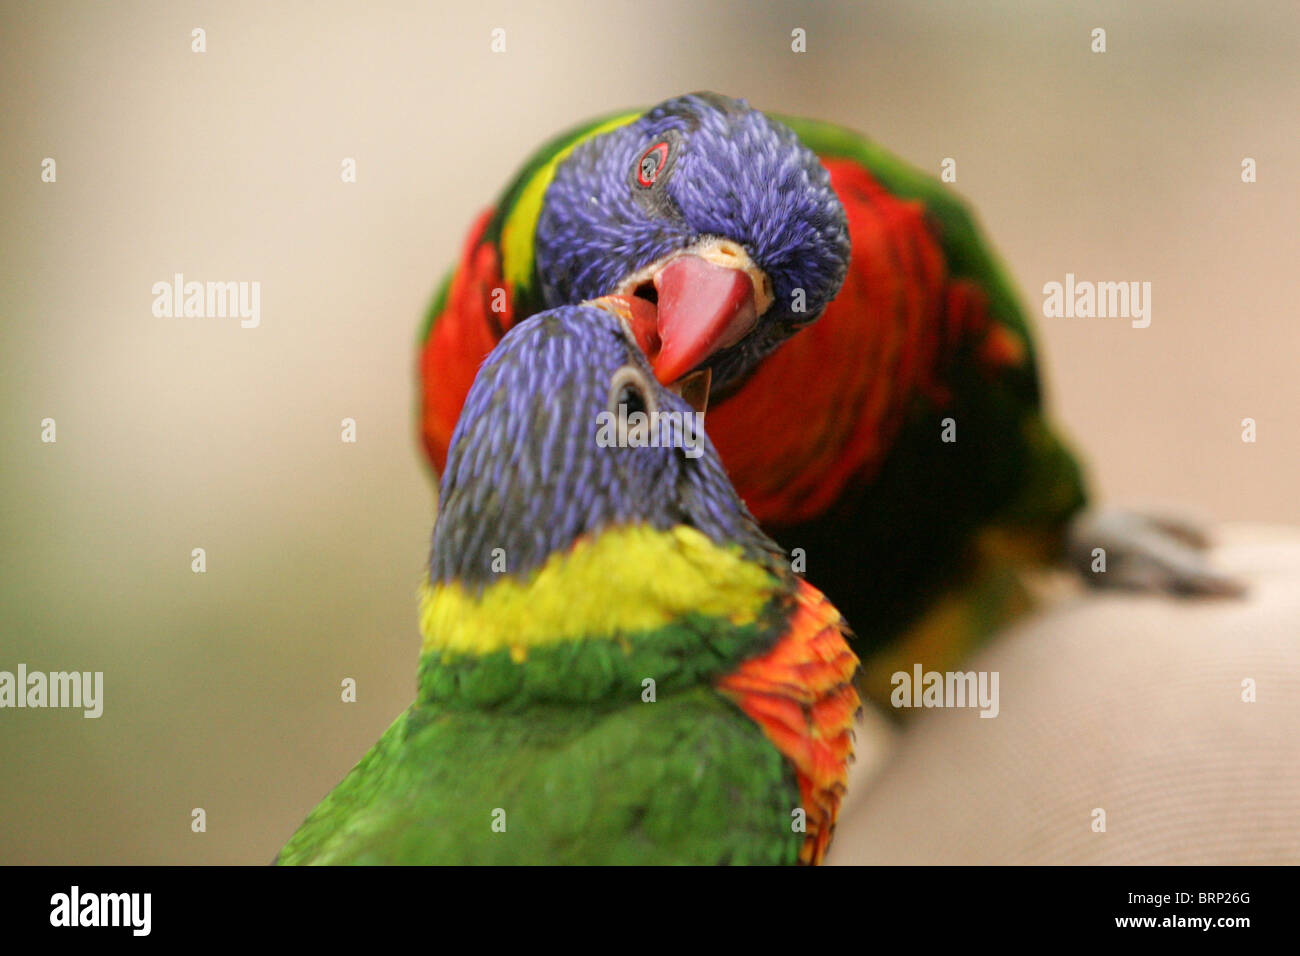 Rainbow Lorikeets with their beaks together - Stock Image